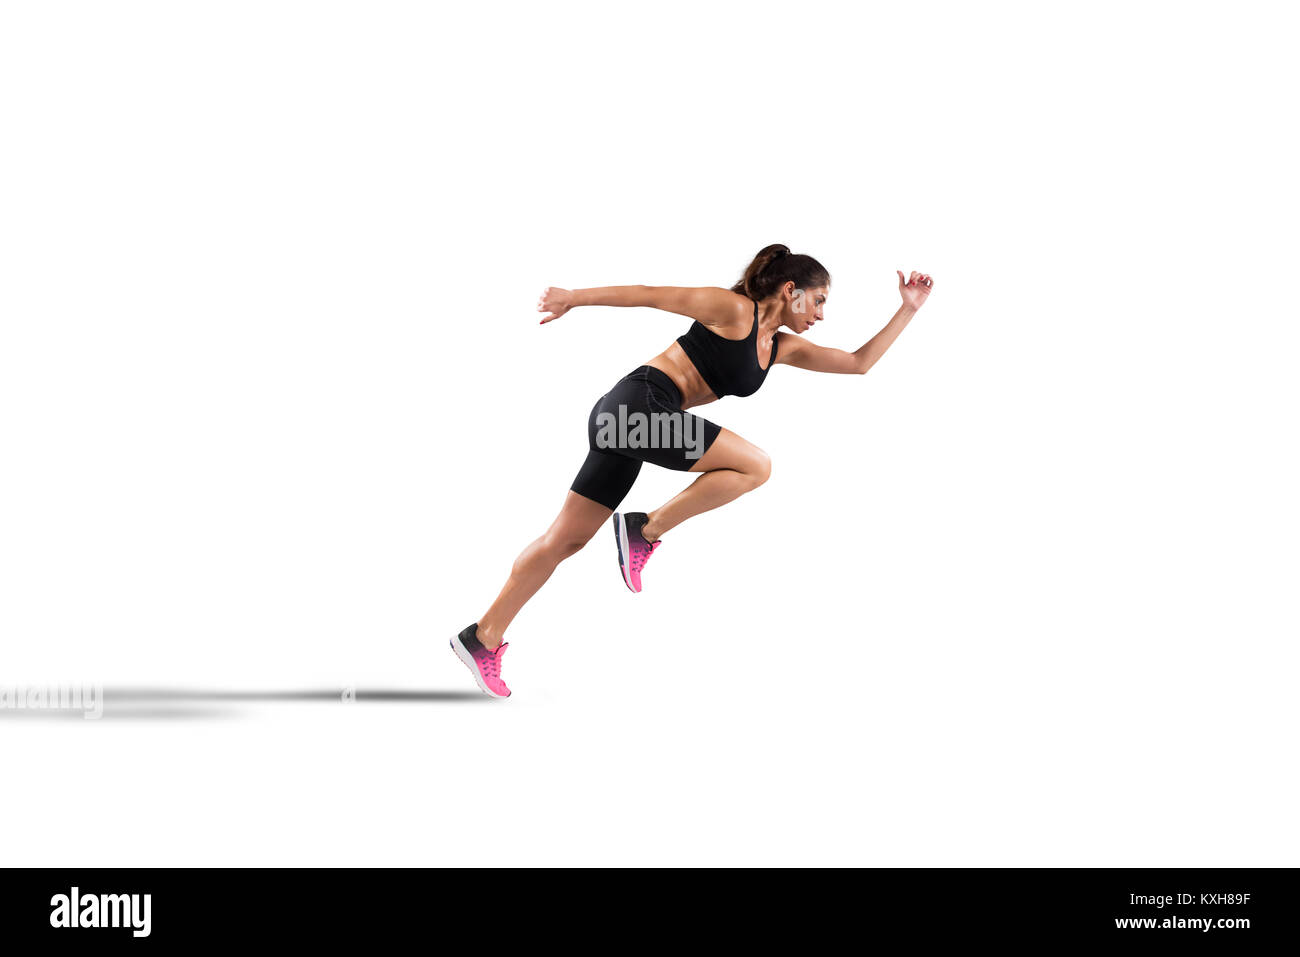 Athletic woman runner isolated on white background - Stock Image